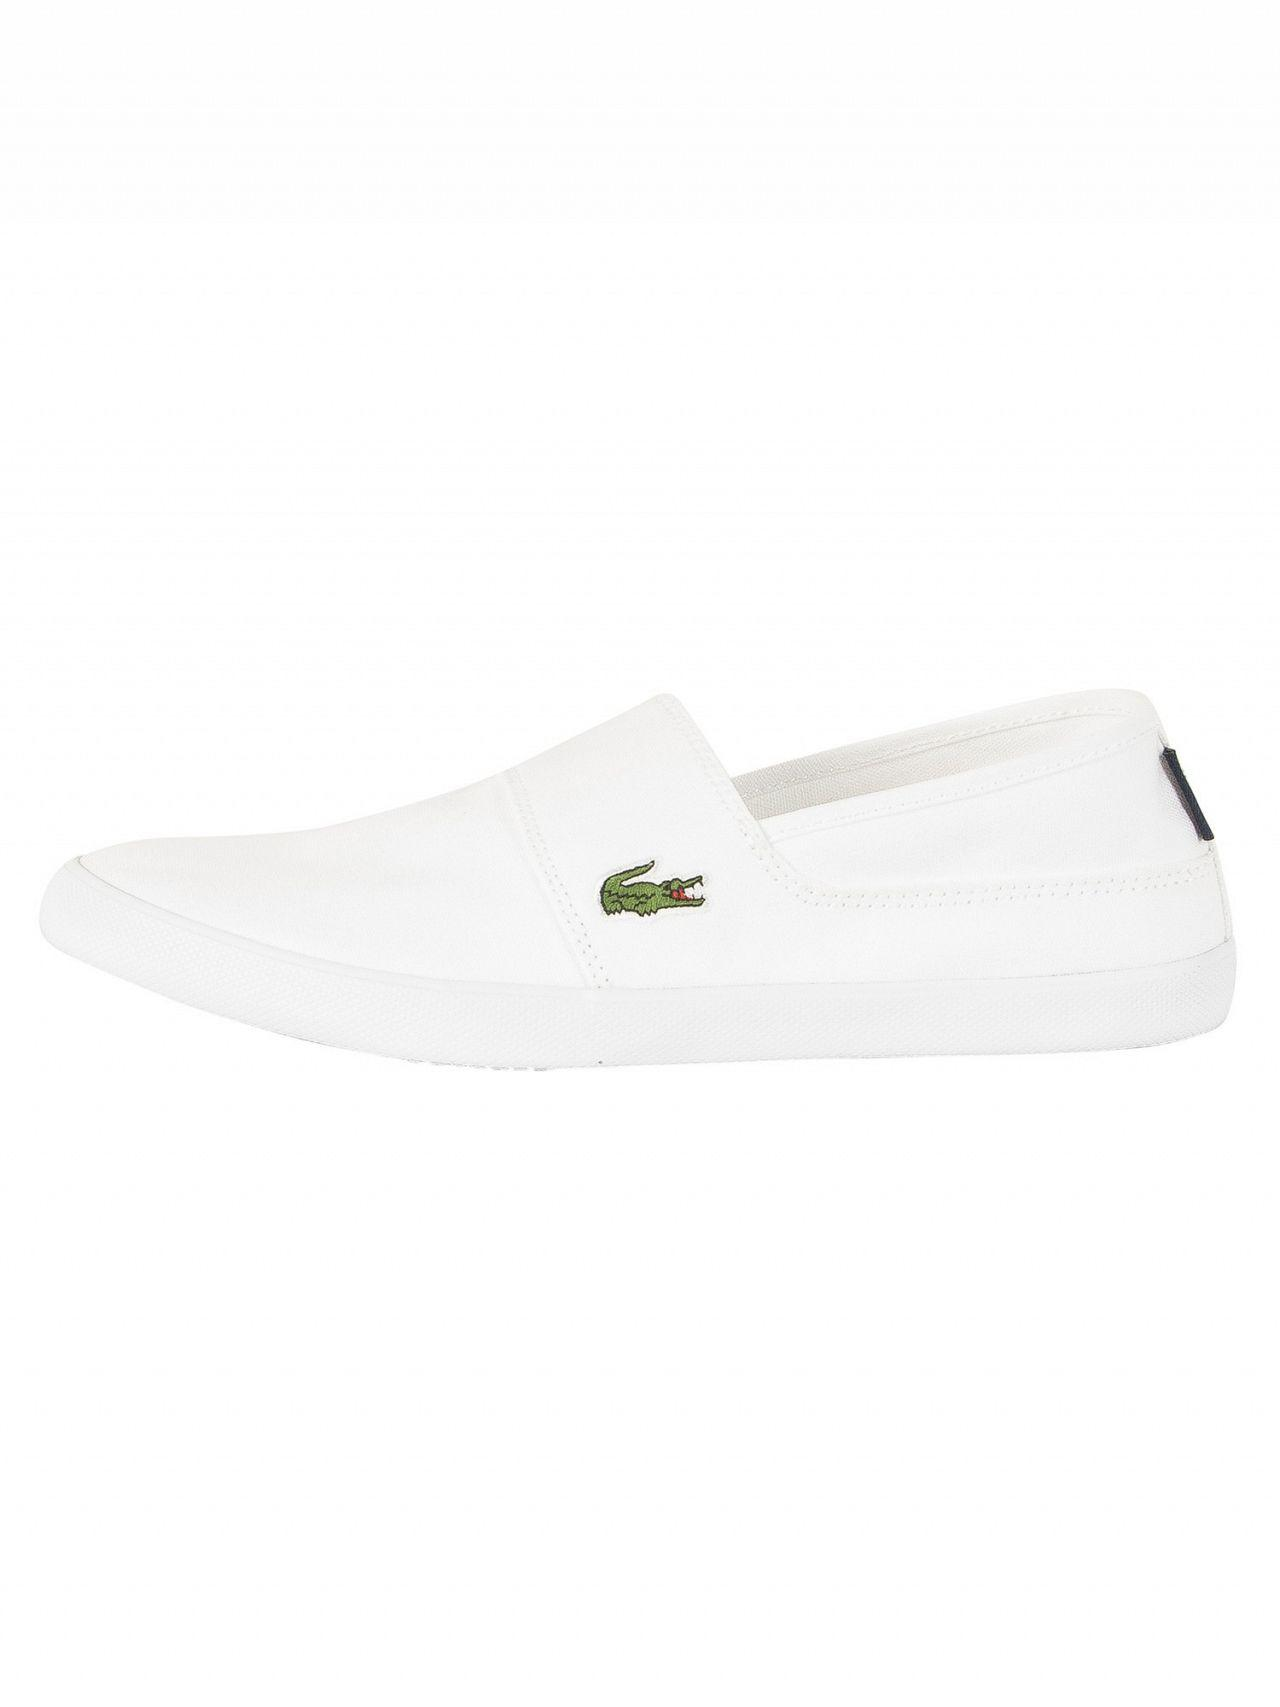 bb4fecbd2 Lyst - Lacoste White Marice Bl 2 Cam Trainers in White for Men